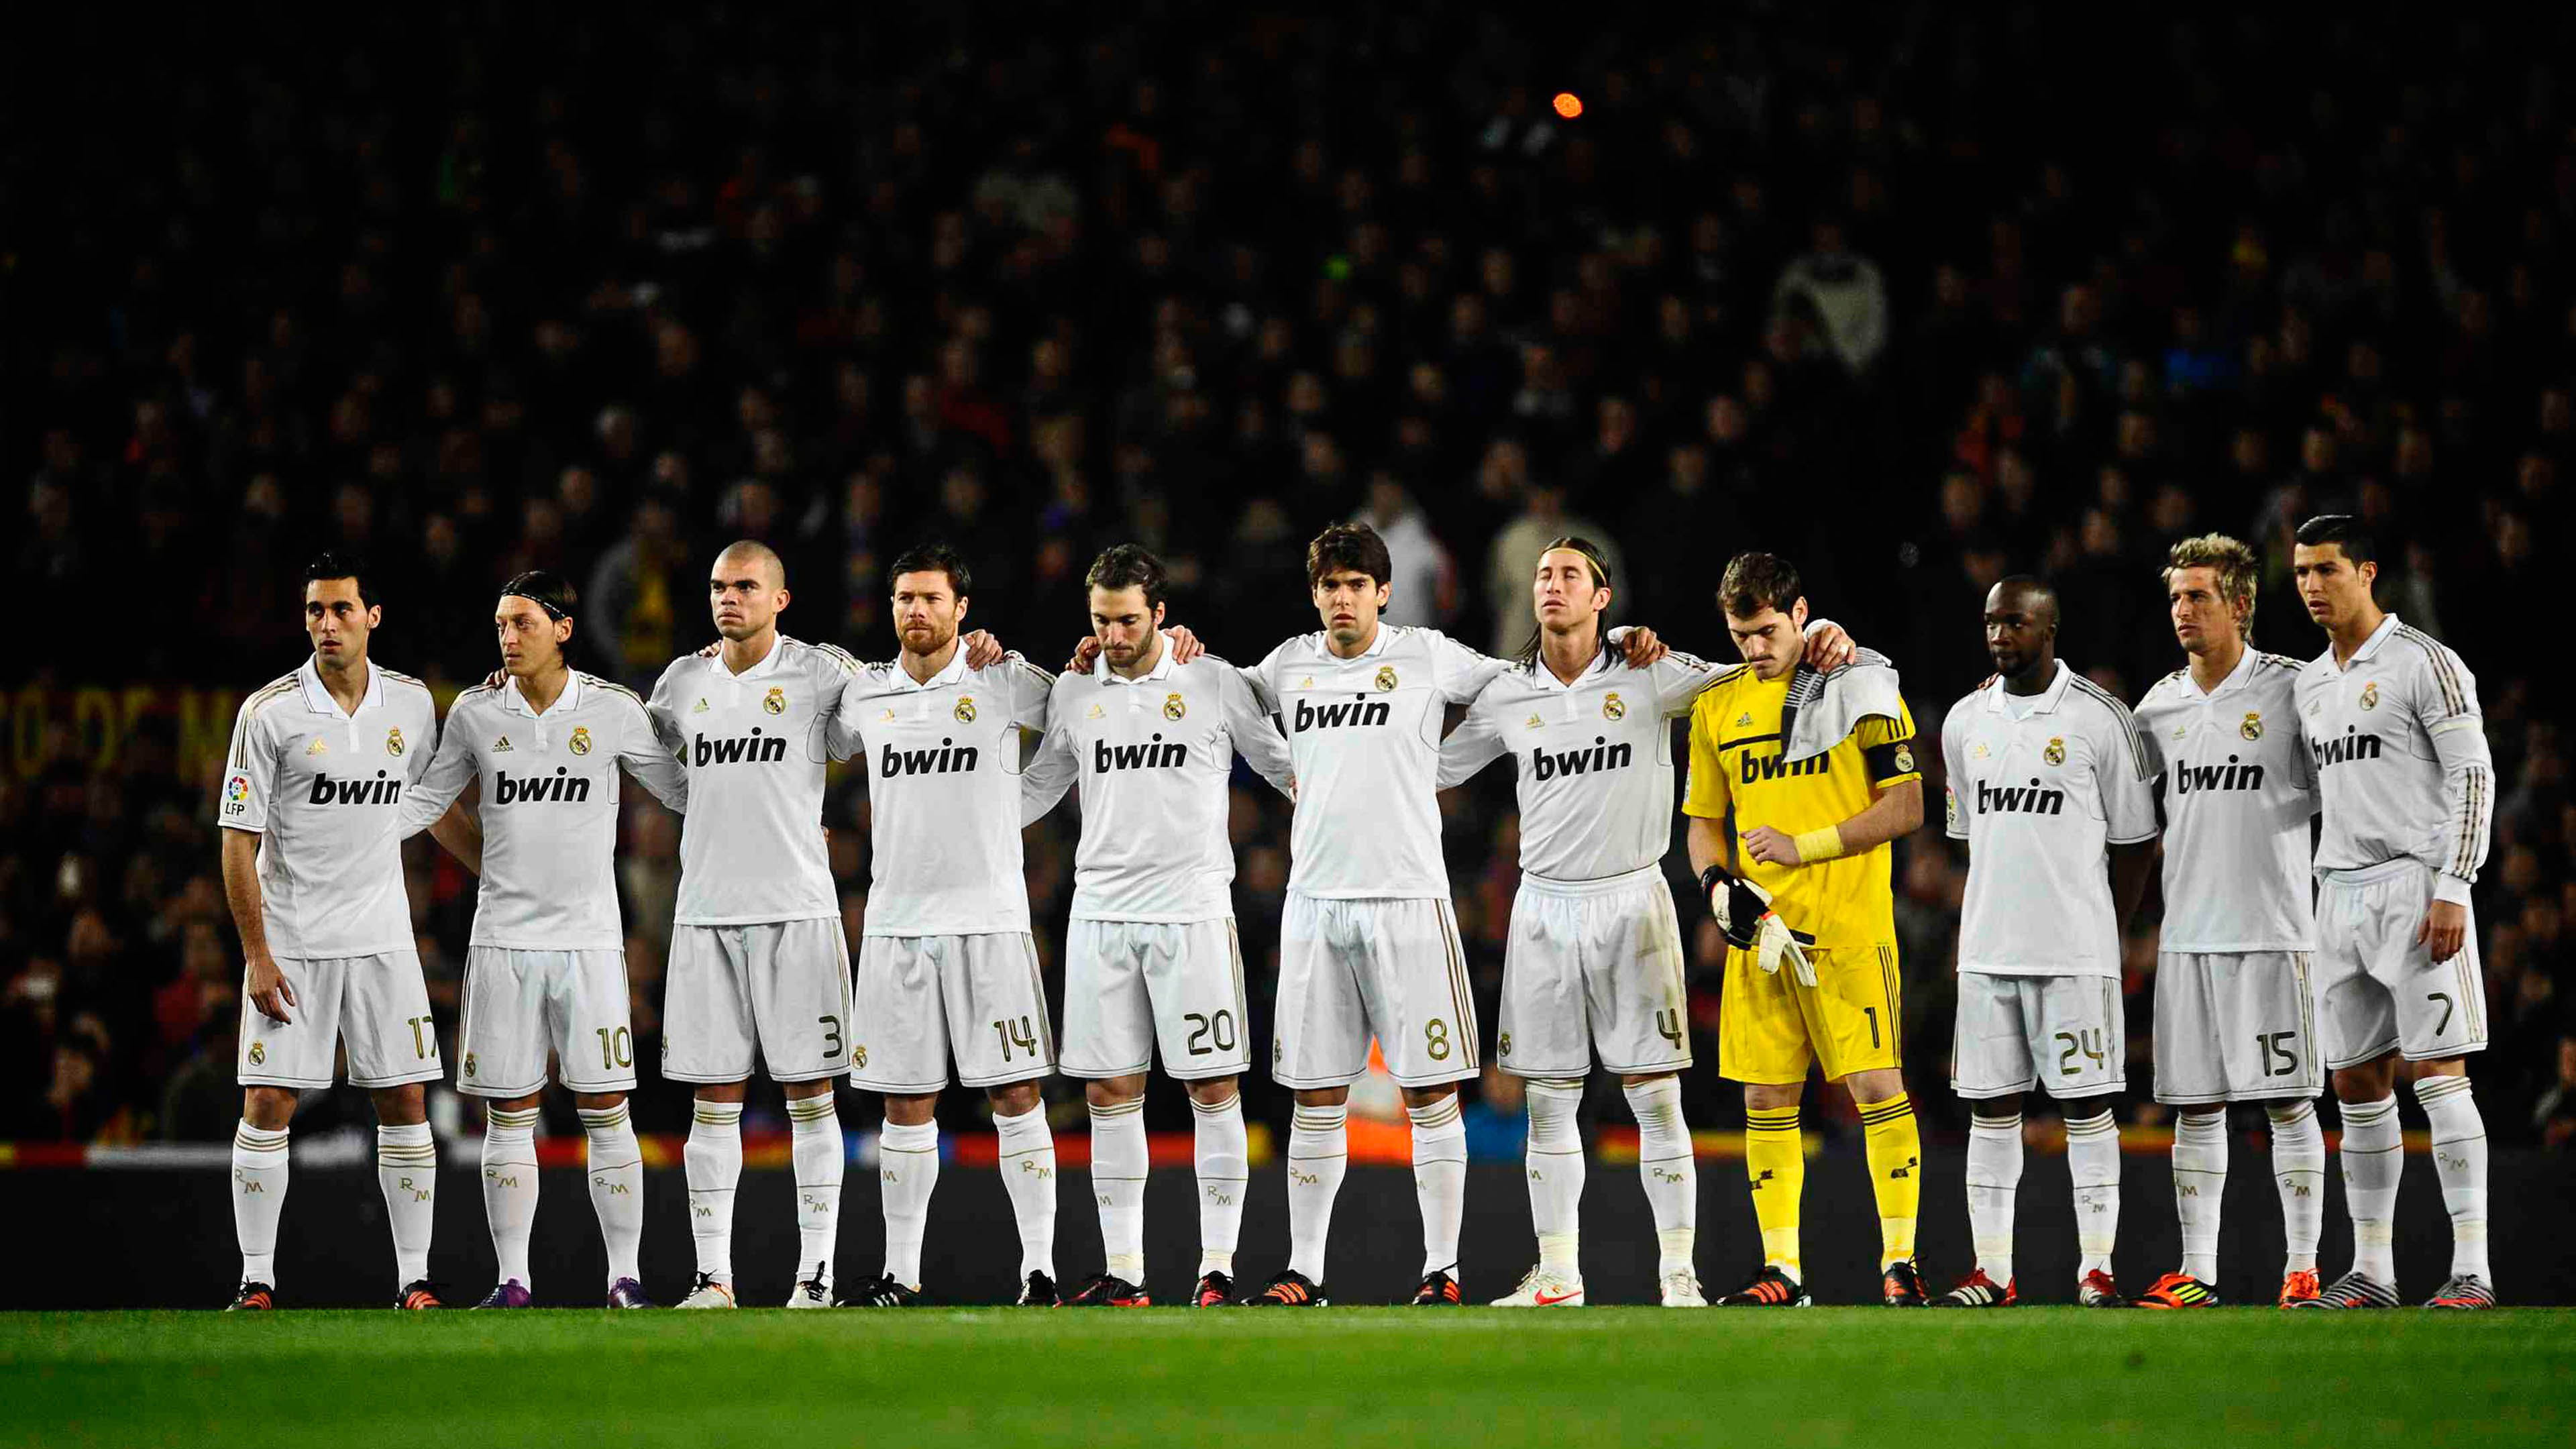 BARCELONA, SPAIN - JANUARY 25: Real Madrid players observe a minute's silence for the